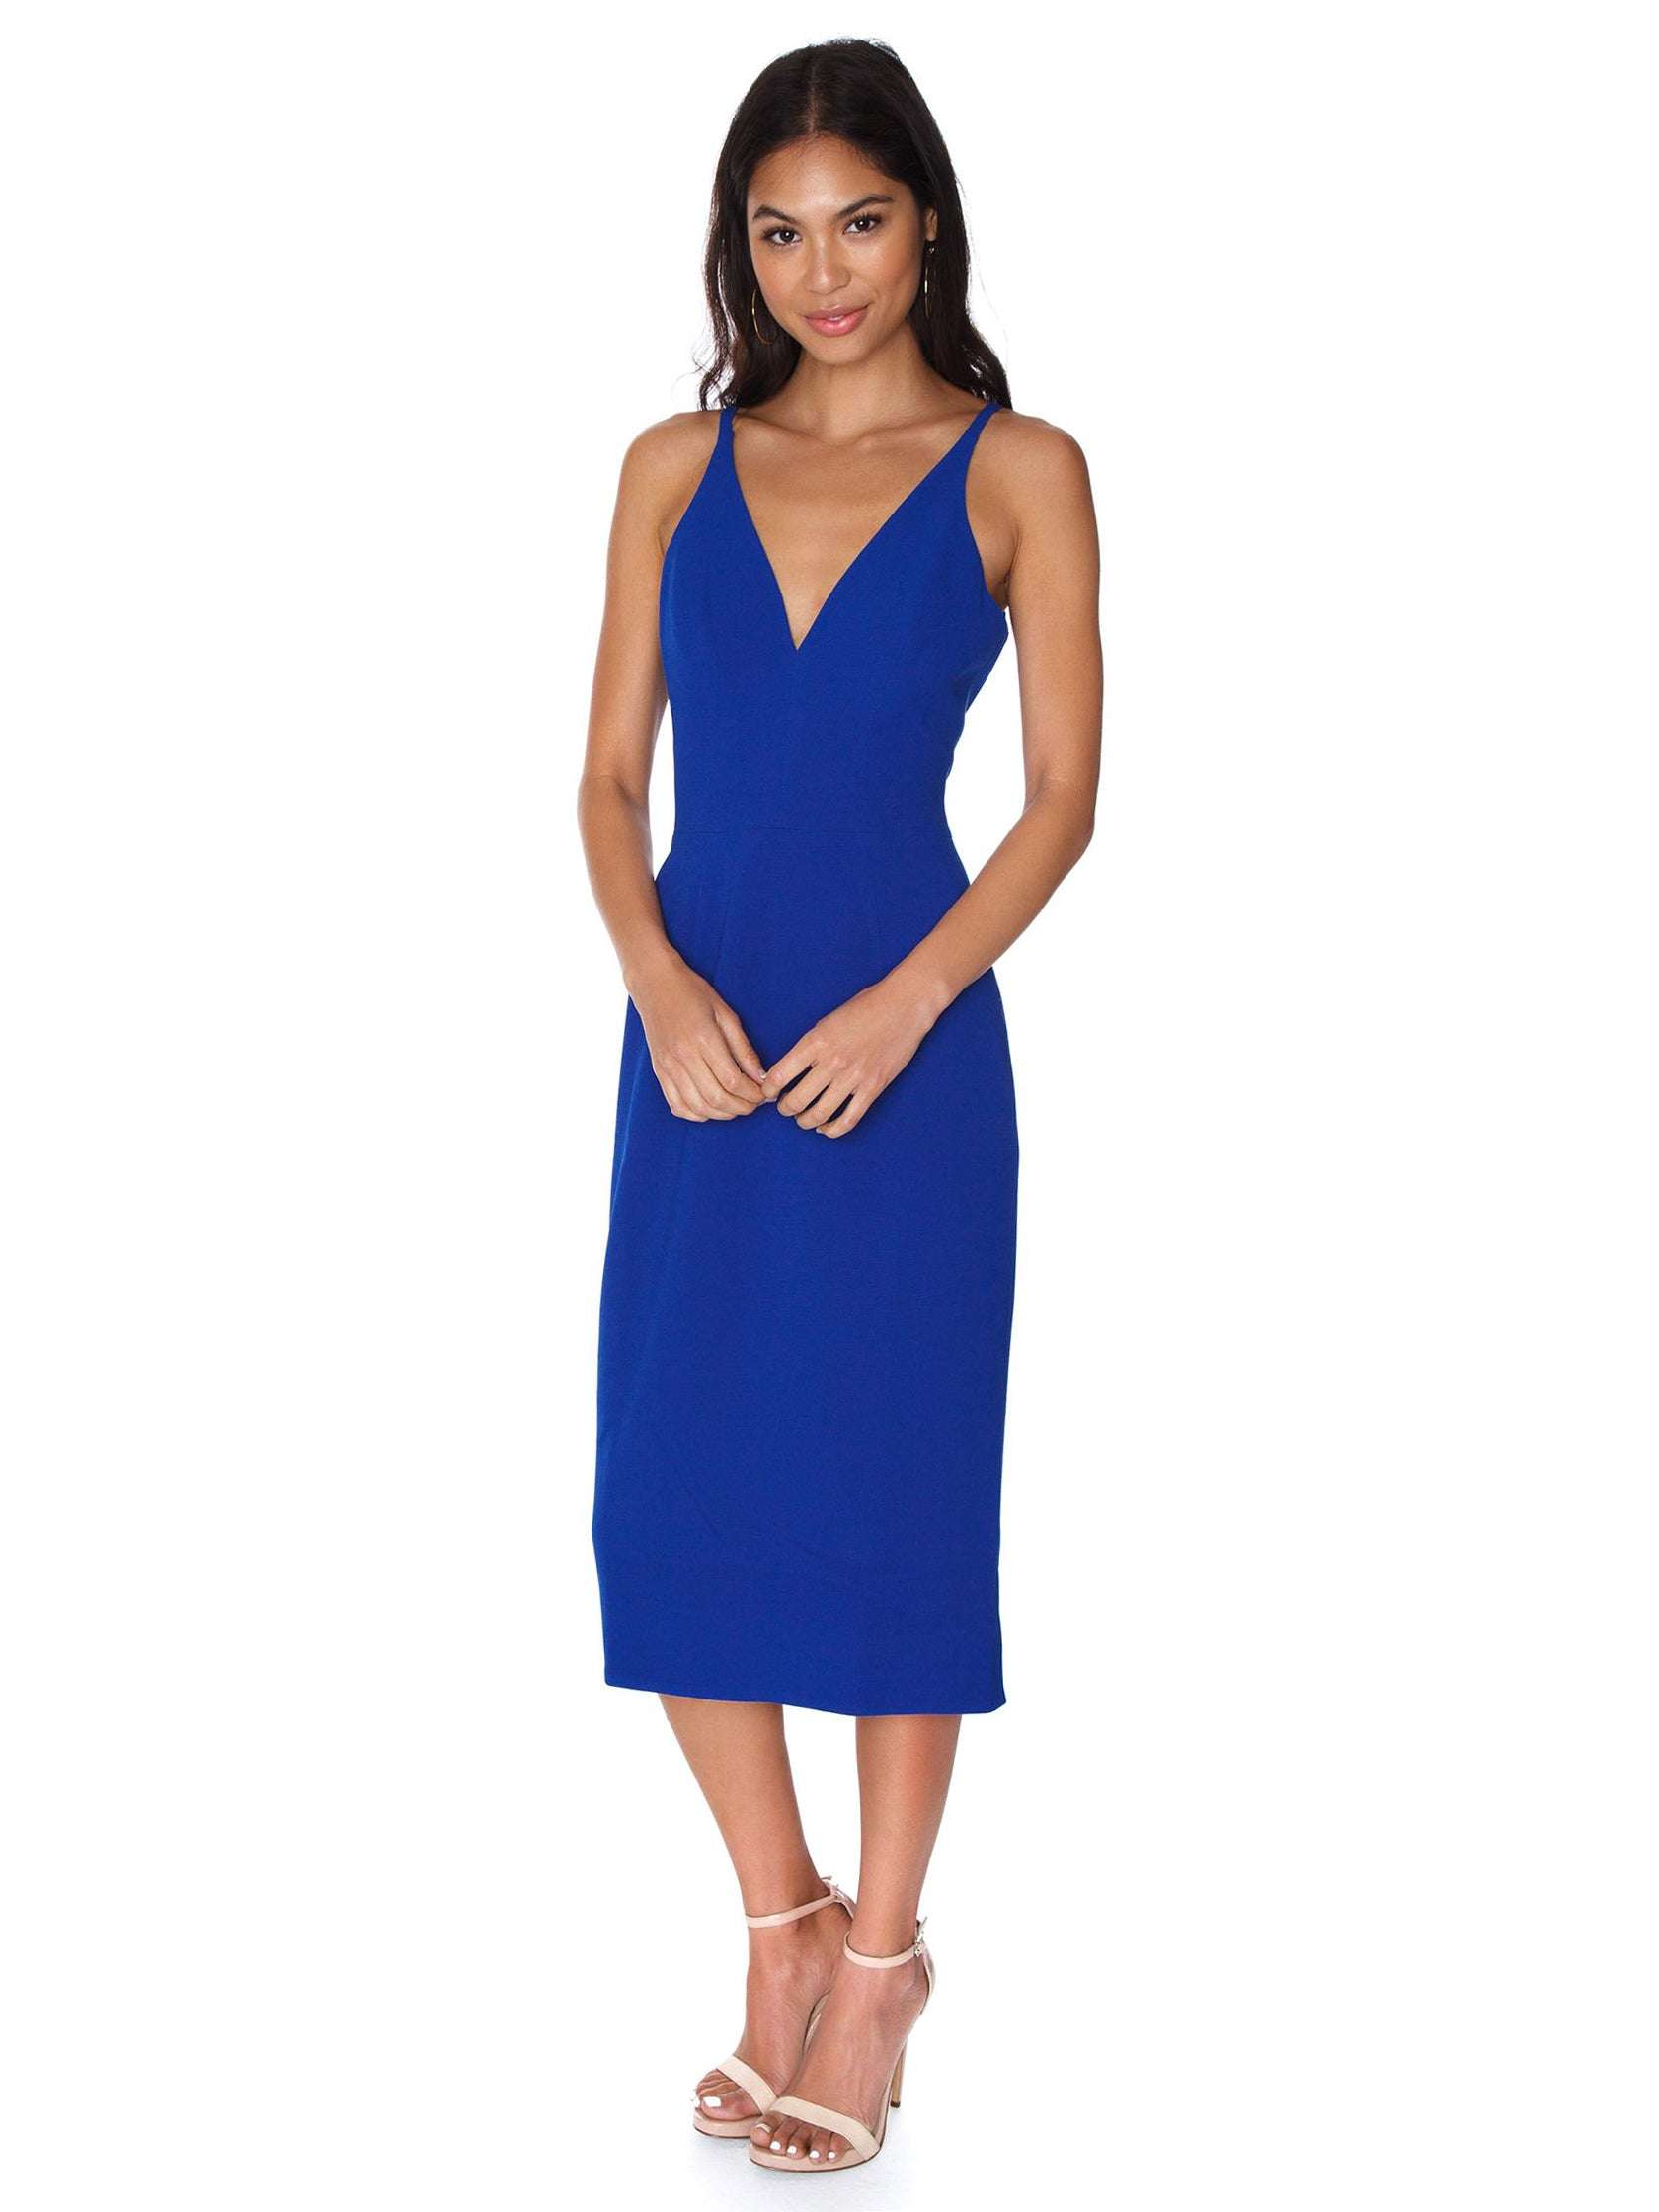 d5389d4eba4 Girl outfit in a dress rental from Dress the Population called Lyla  Plunging Midi Dress